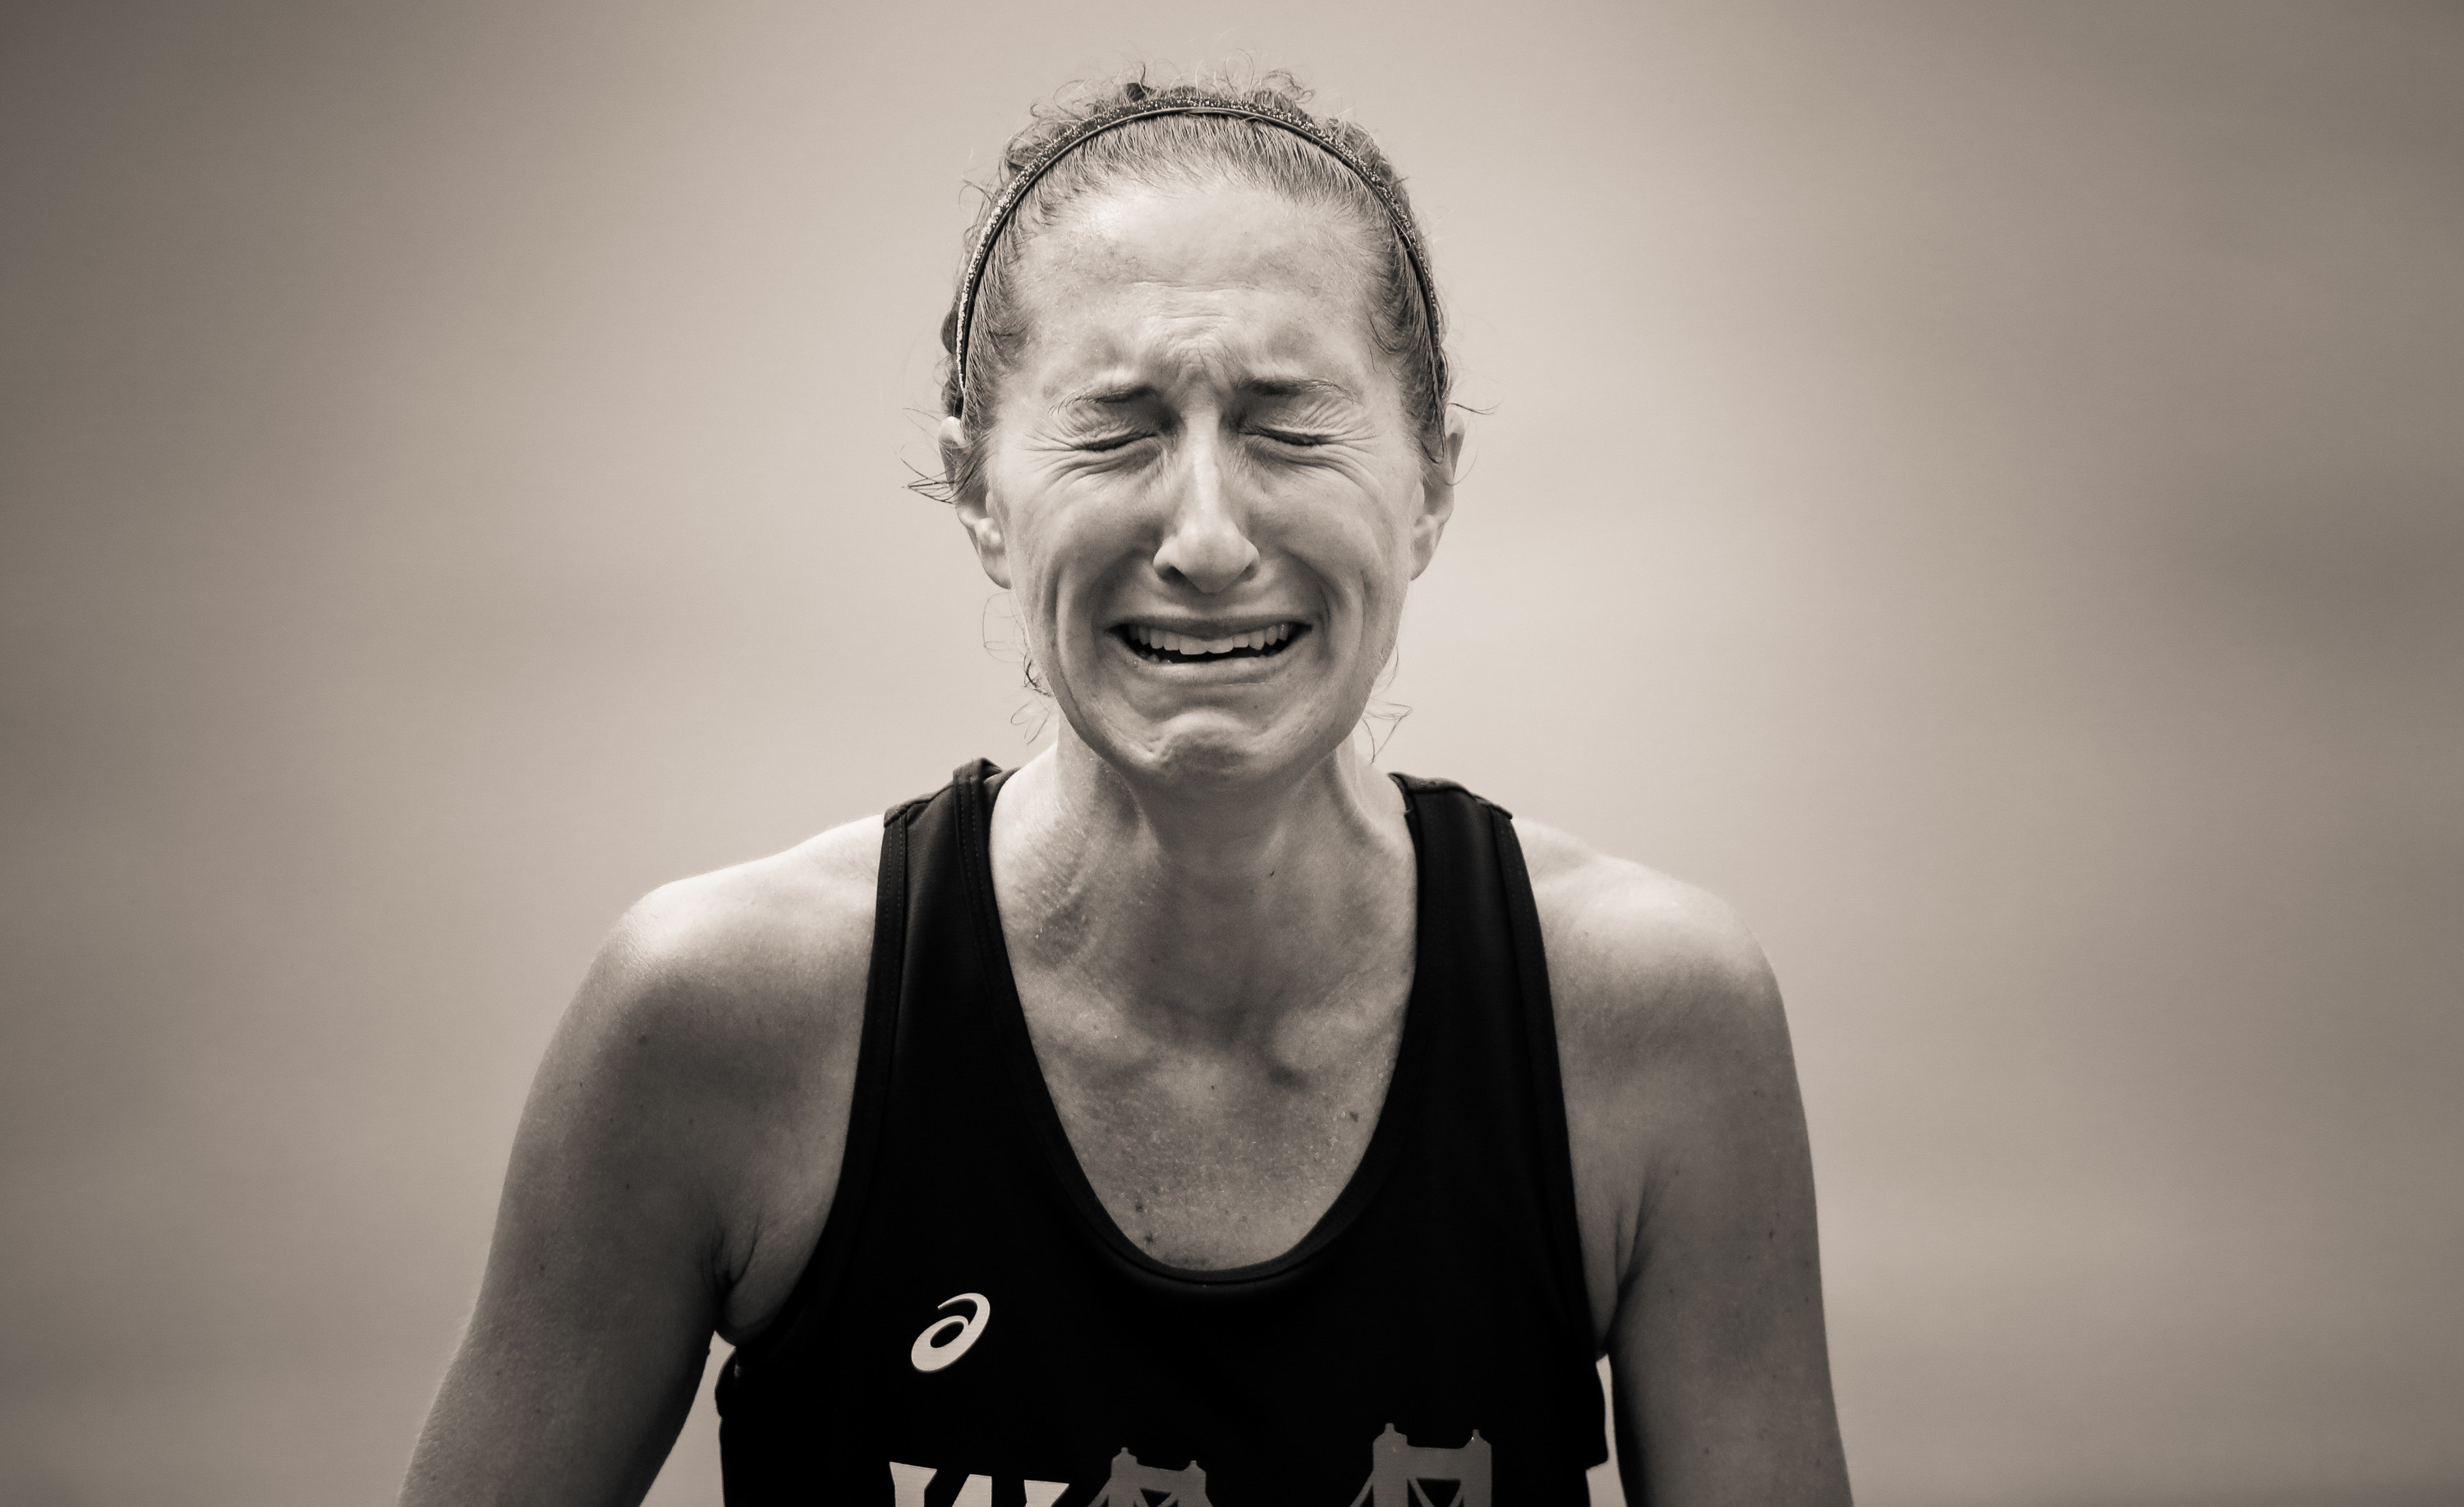 A woman's face is contorted with tears as she finishes the marathon